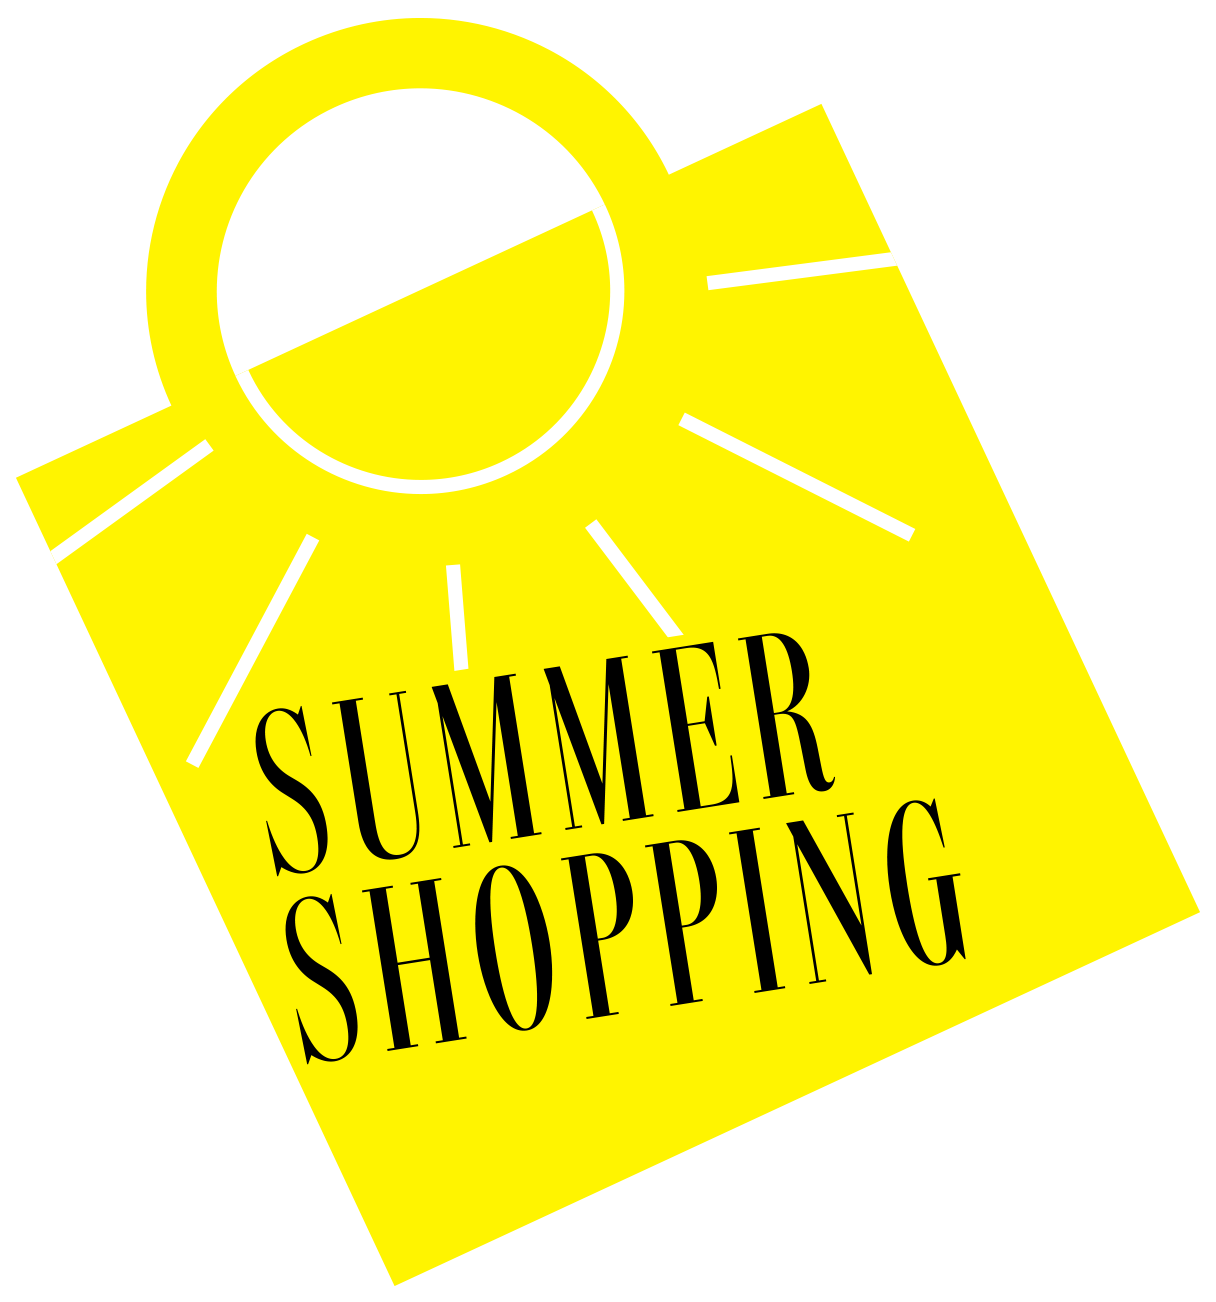 summer shopping logo.png